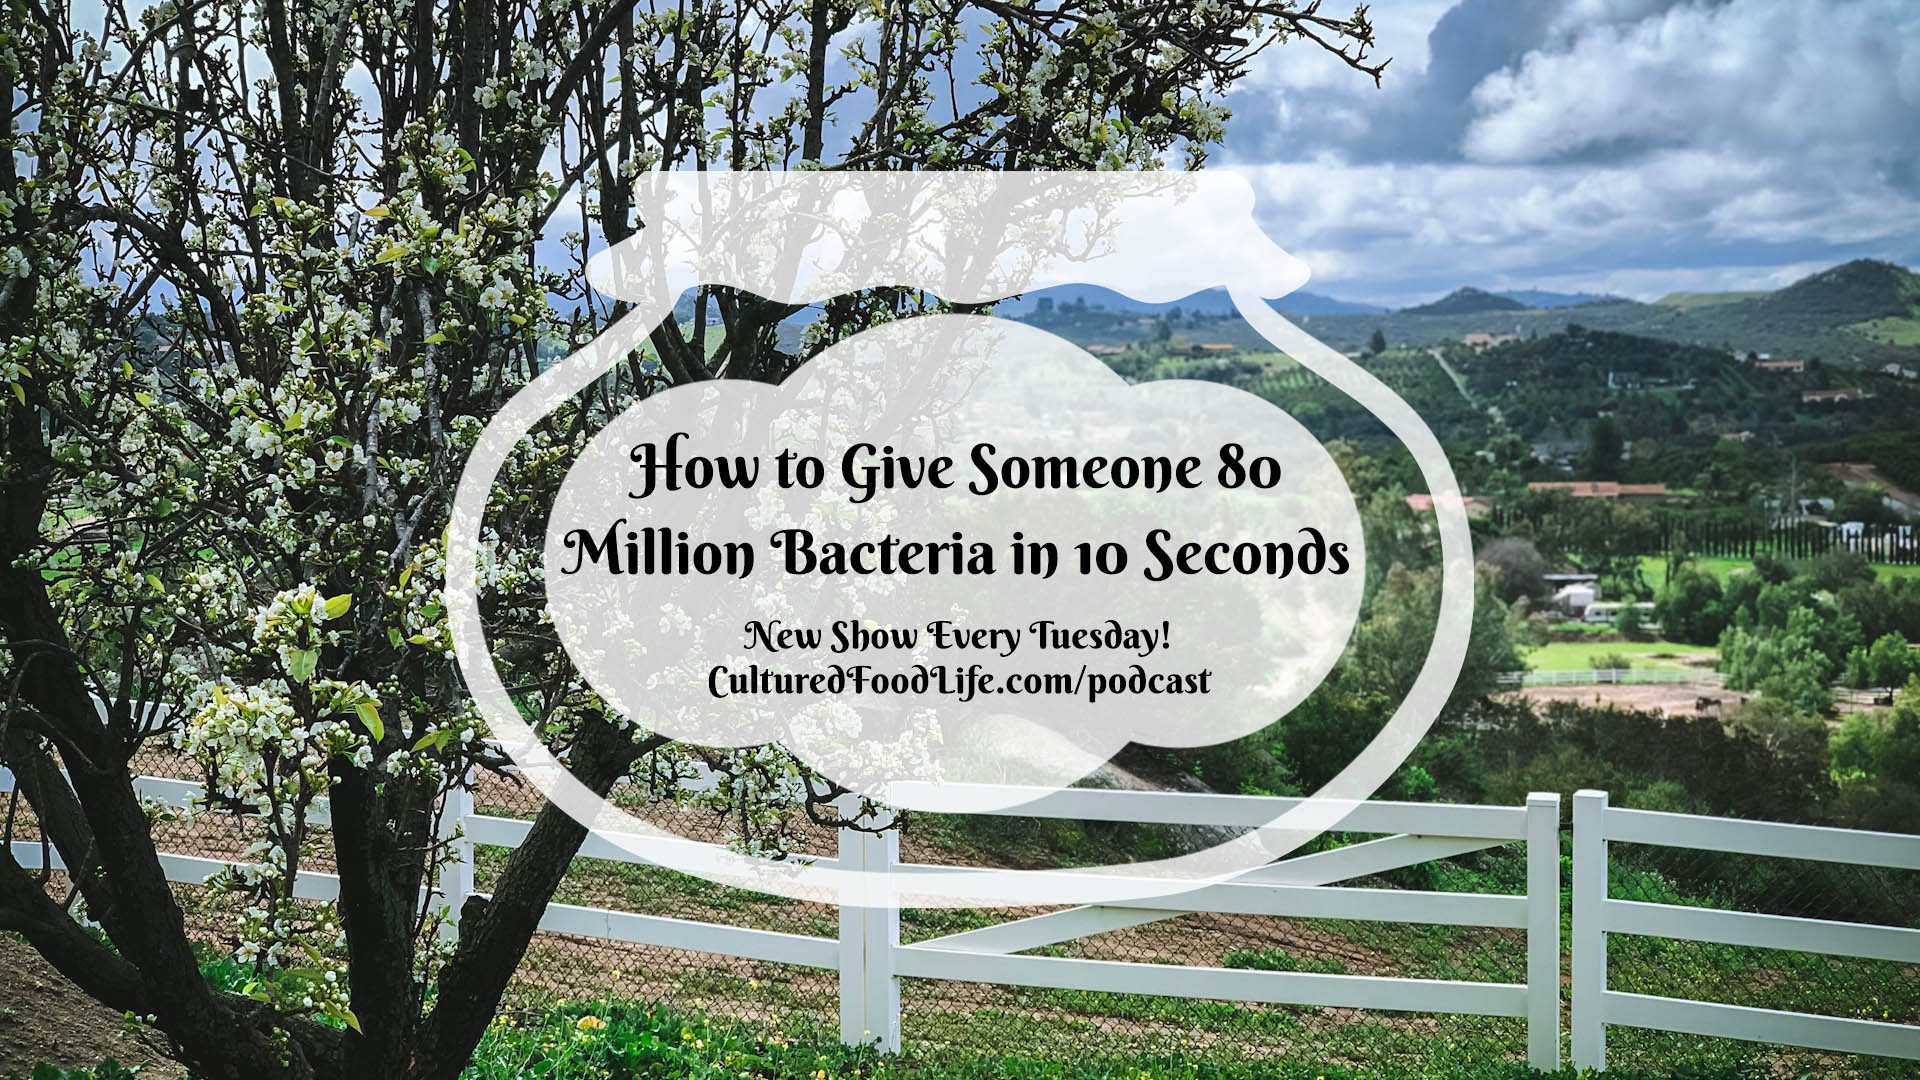 How to Give Someone 80 Million Bacteria in 10 Seconds Full